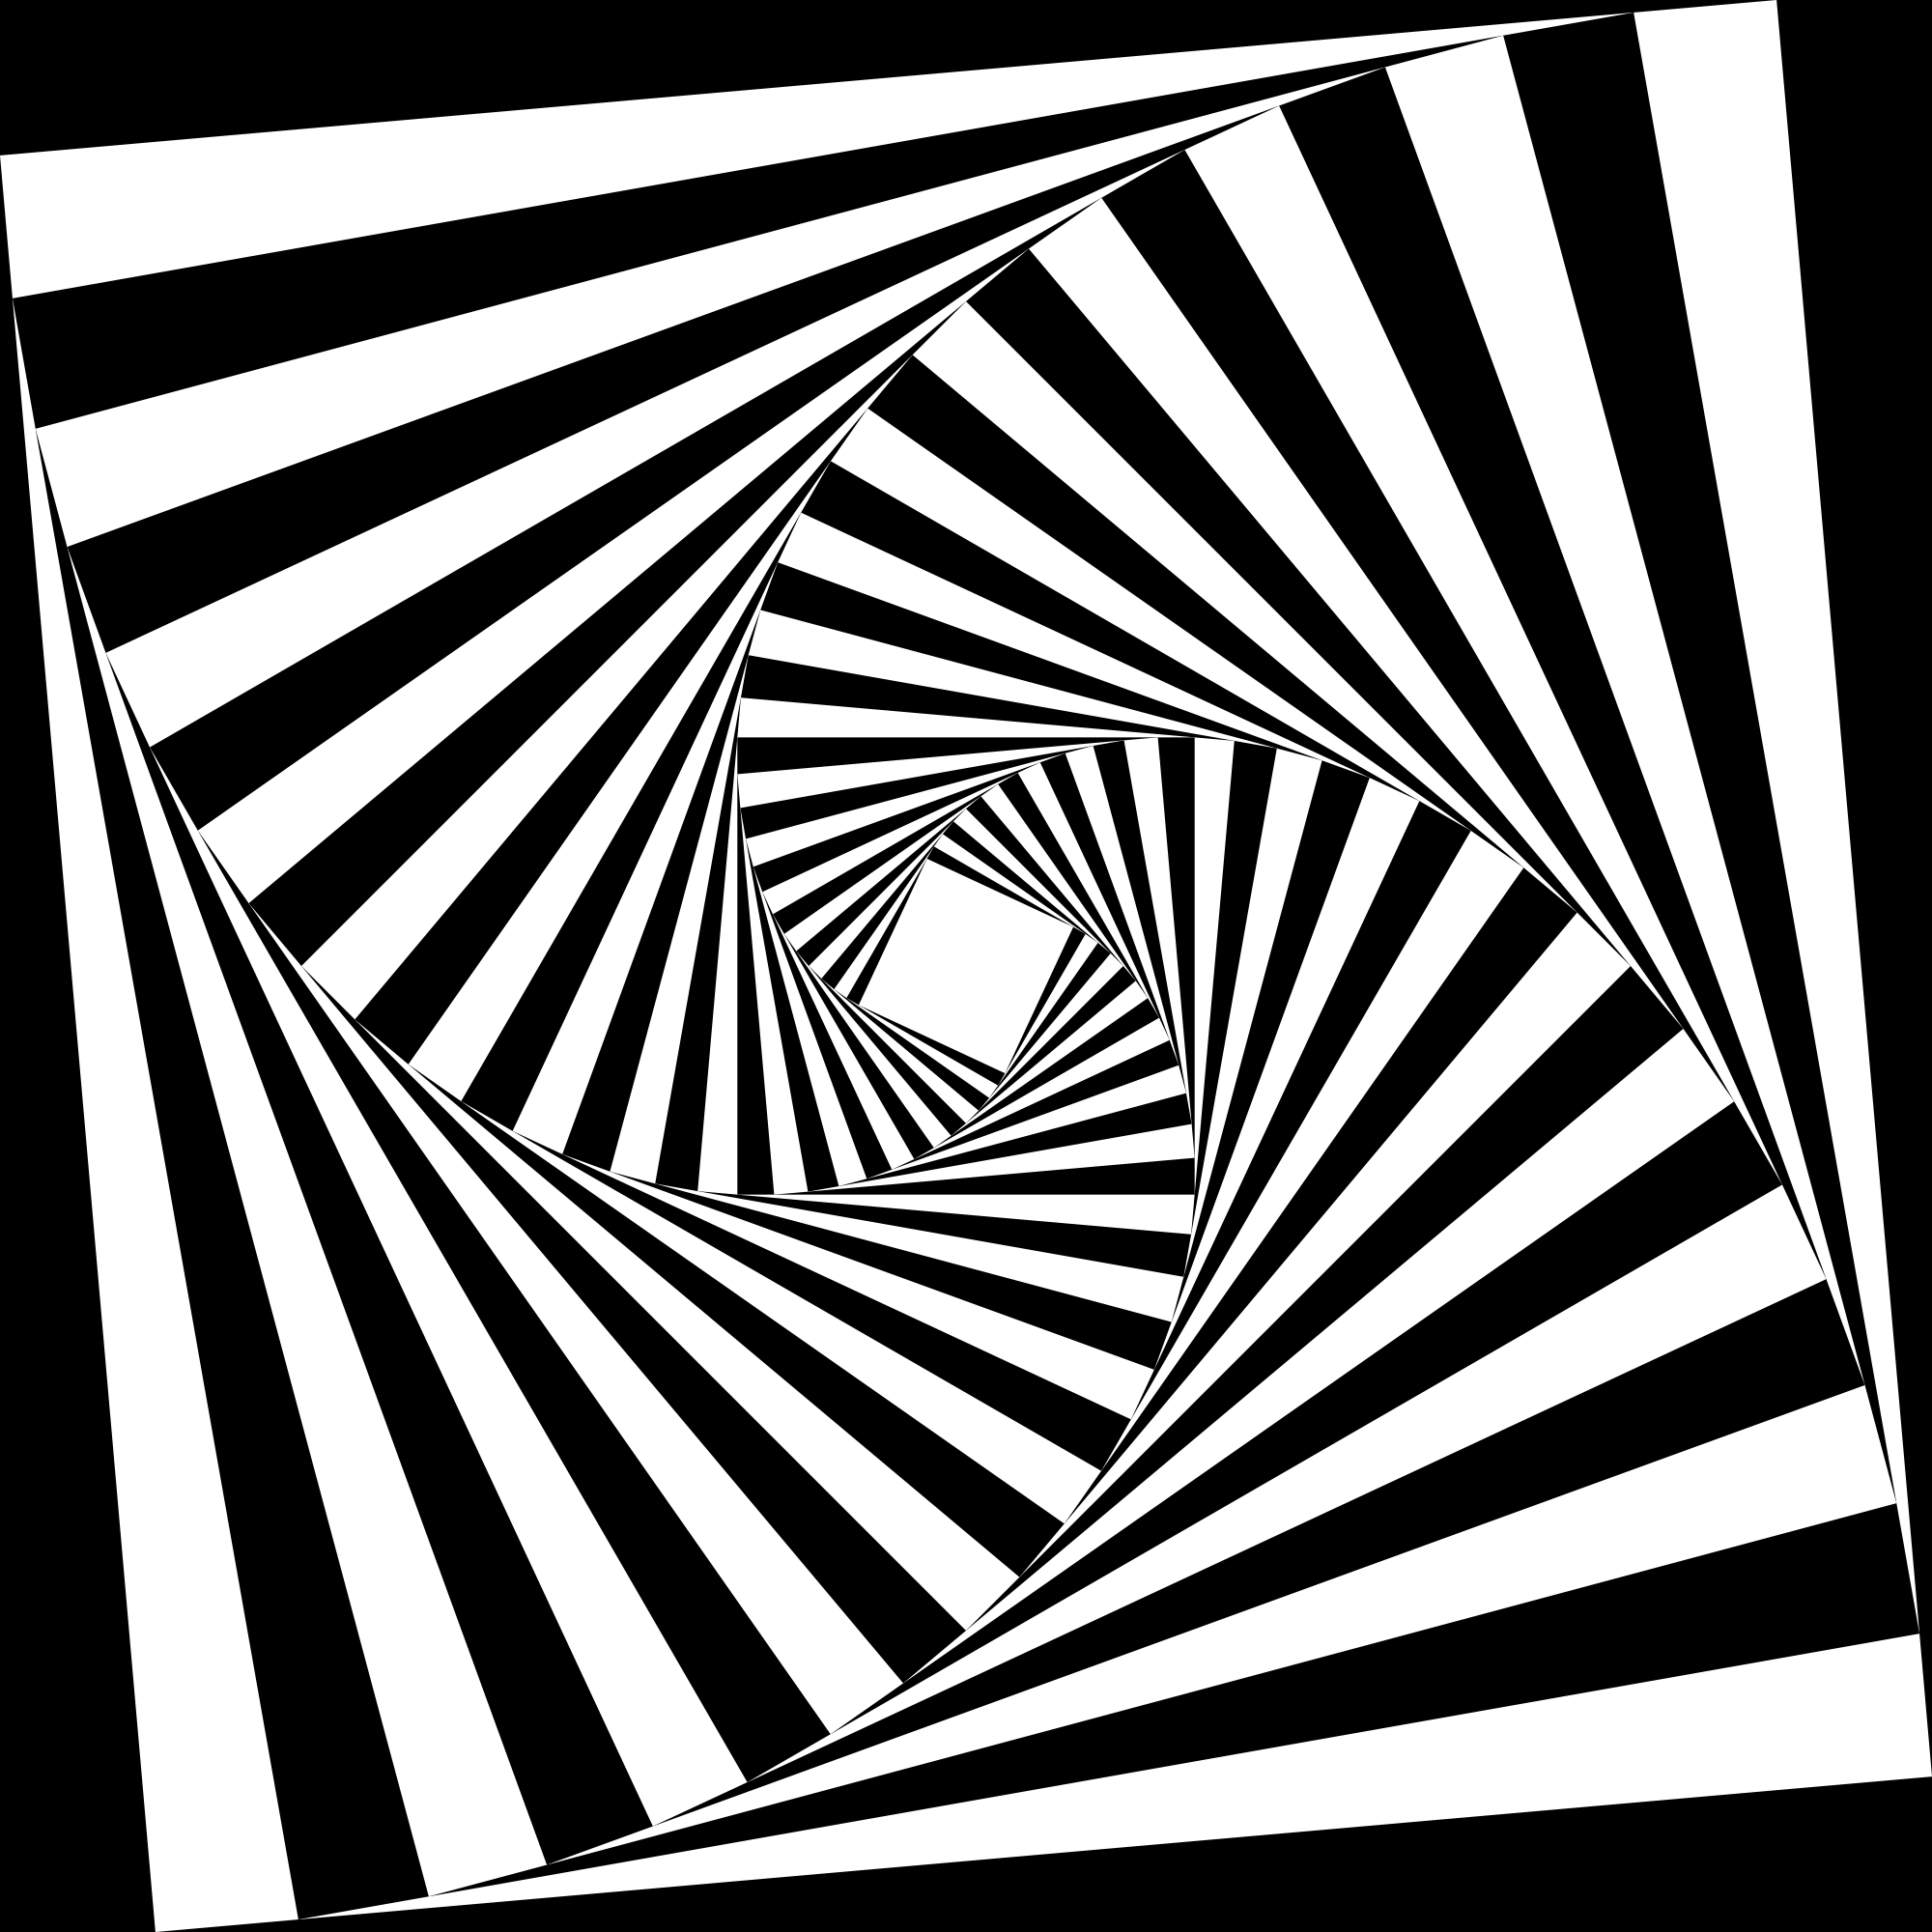 op spiral optical illusion tunnel illusions drawings patterns lessons svg geometric designs painting bridget tes visit sided wikimedia commons